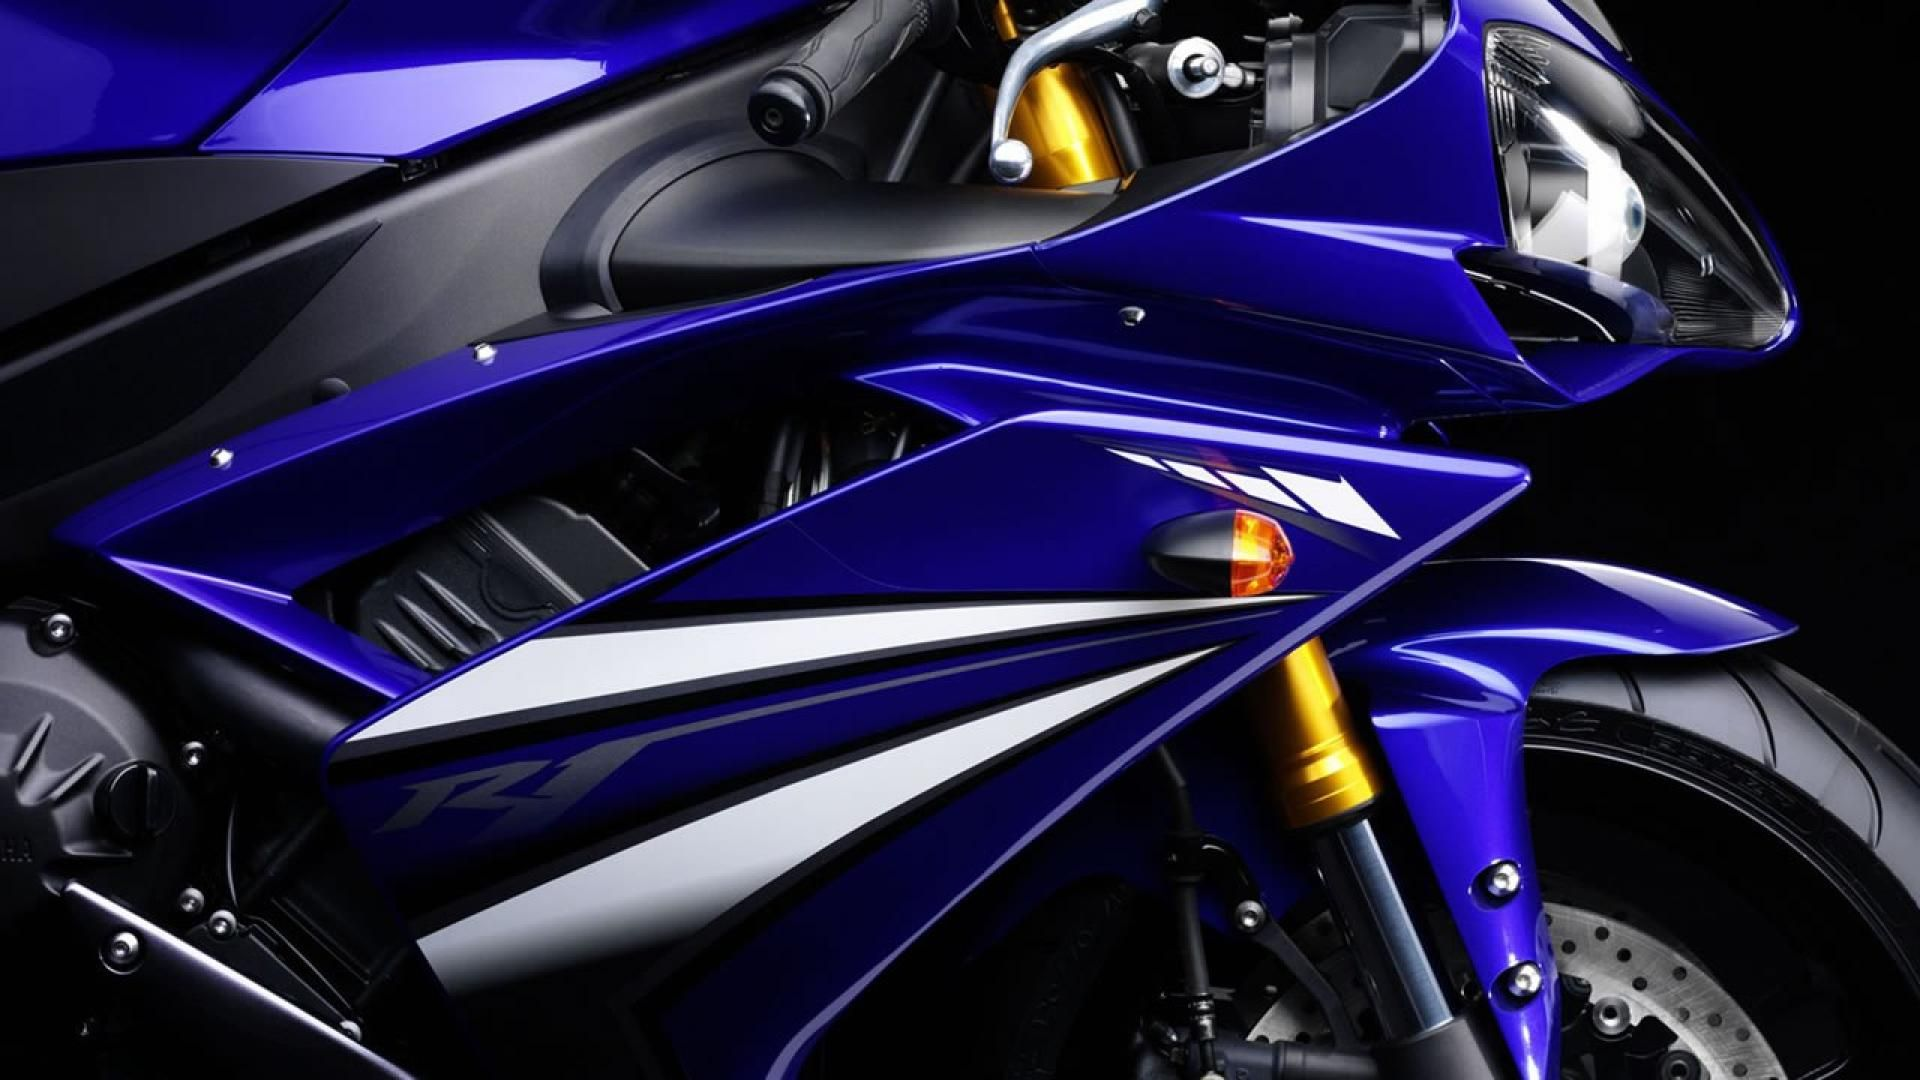 2012 yamaha yzf r6 reviews prices and specs review ebooks - Yamaha Super Bikes Wallpapers Download Wallpaper Pinterest Yamaha Bikes Wallpaper Free Download And Hd Wallpaper